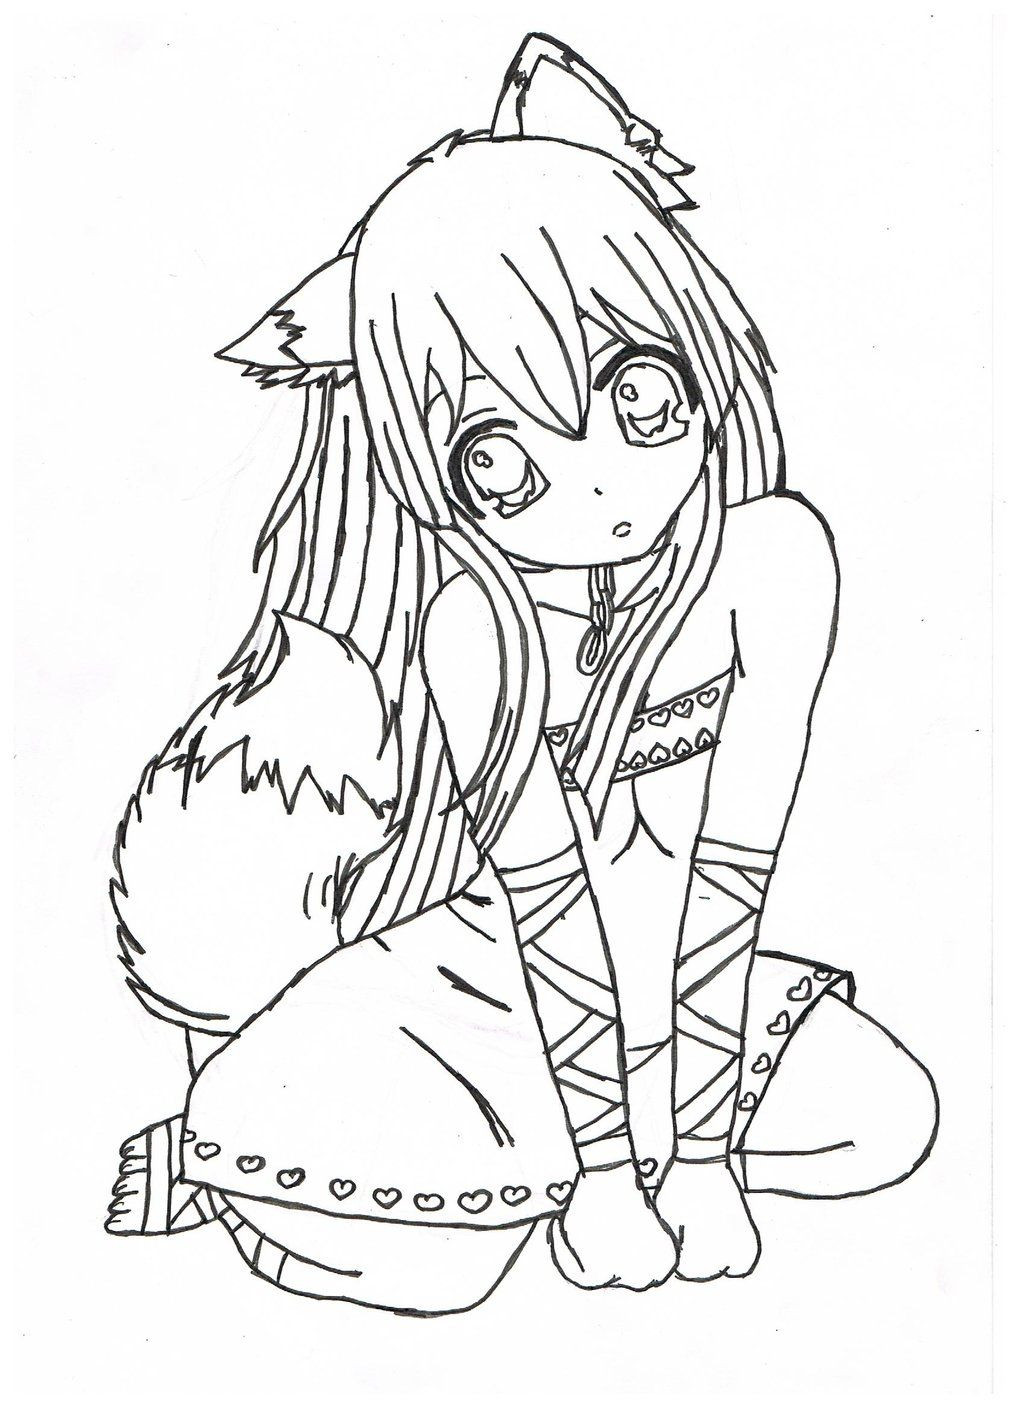 Anime Coloring Pages Printable  Print Anime Coloring Pages Coloring Home